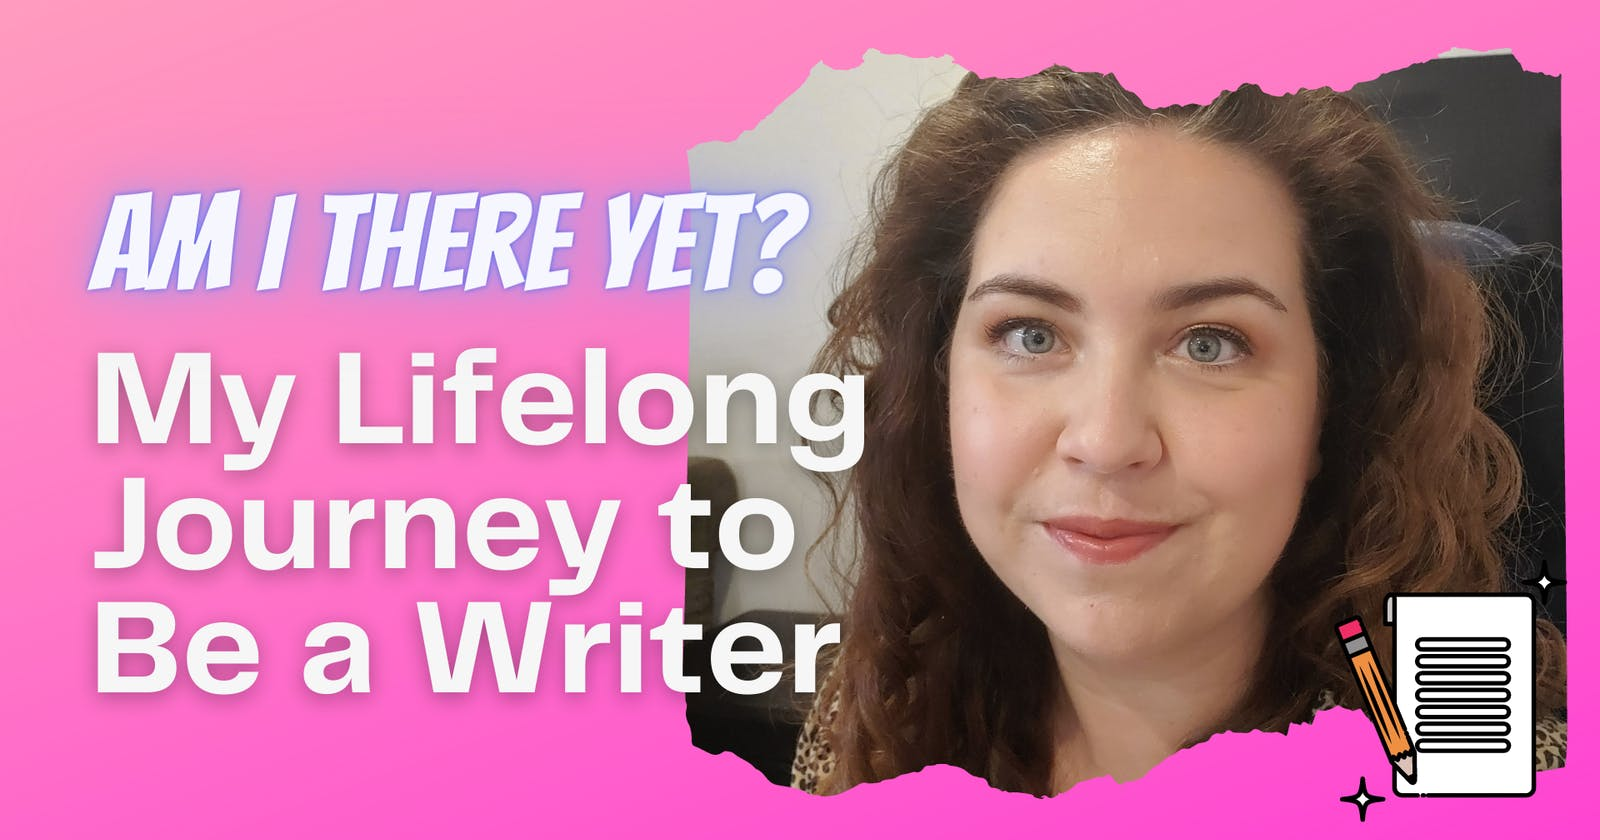 Am I There Yet? My Lifelong Journey to Be a Writer